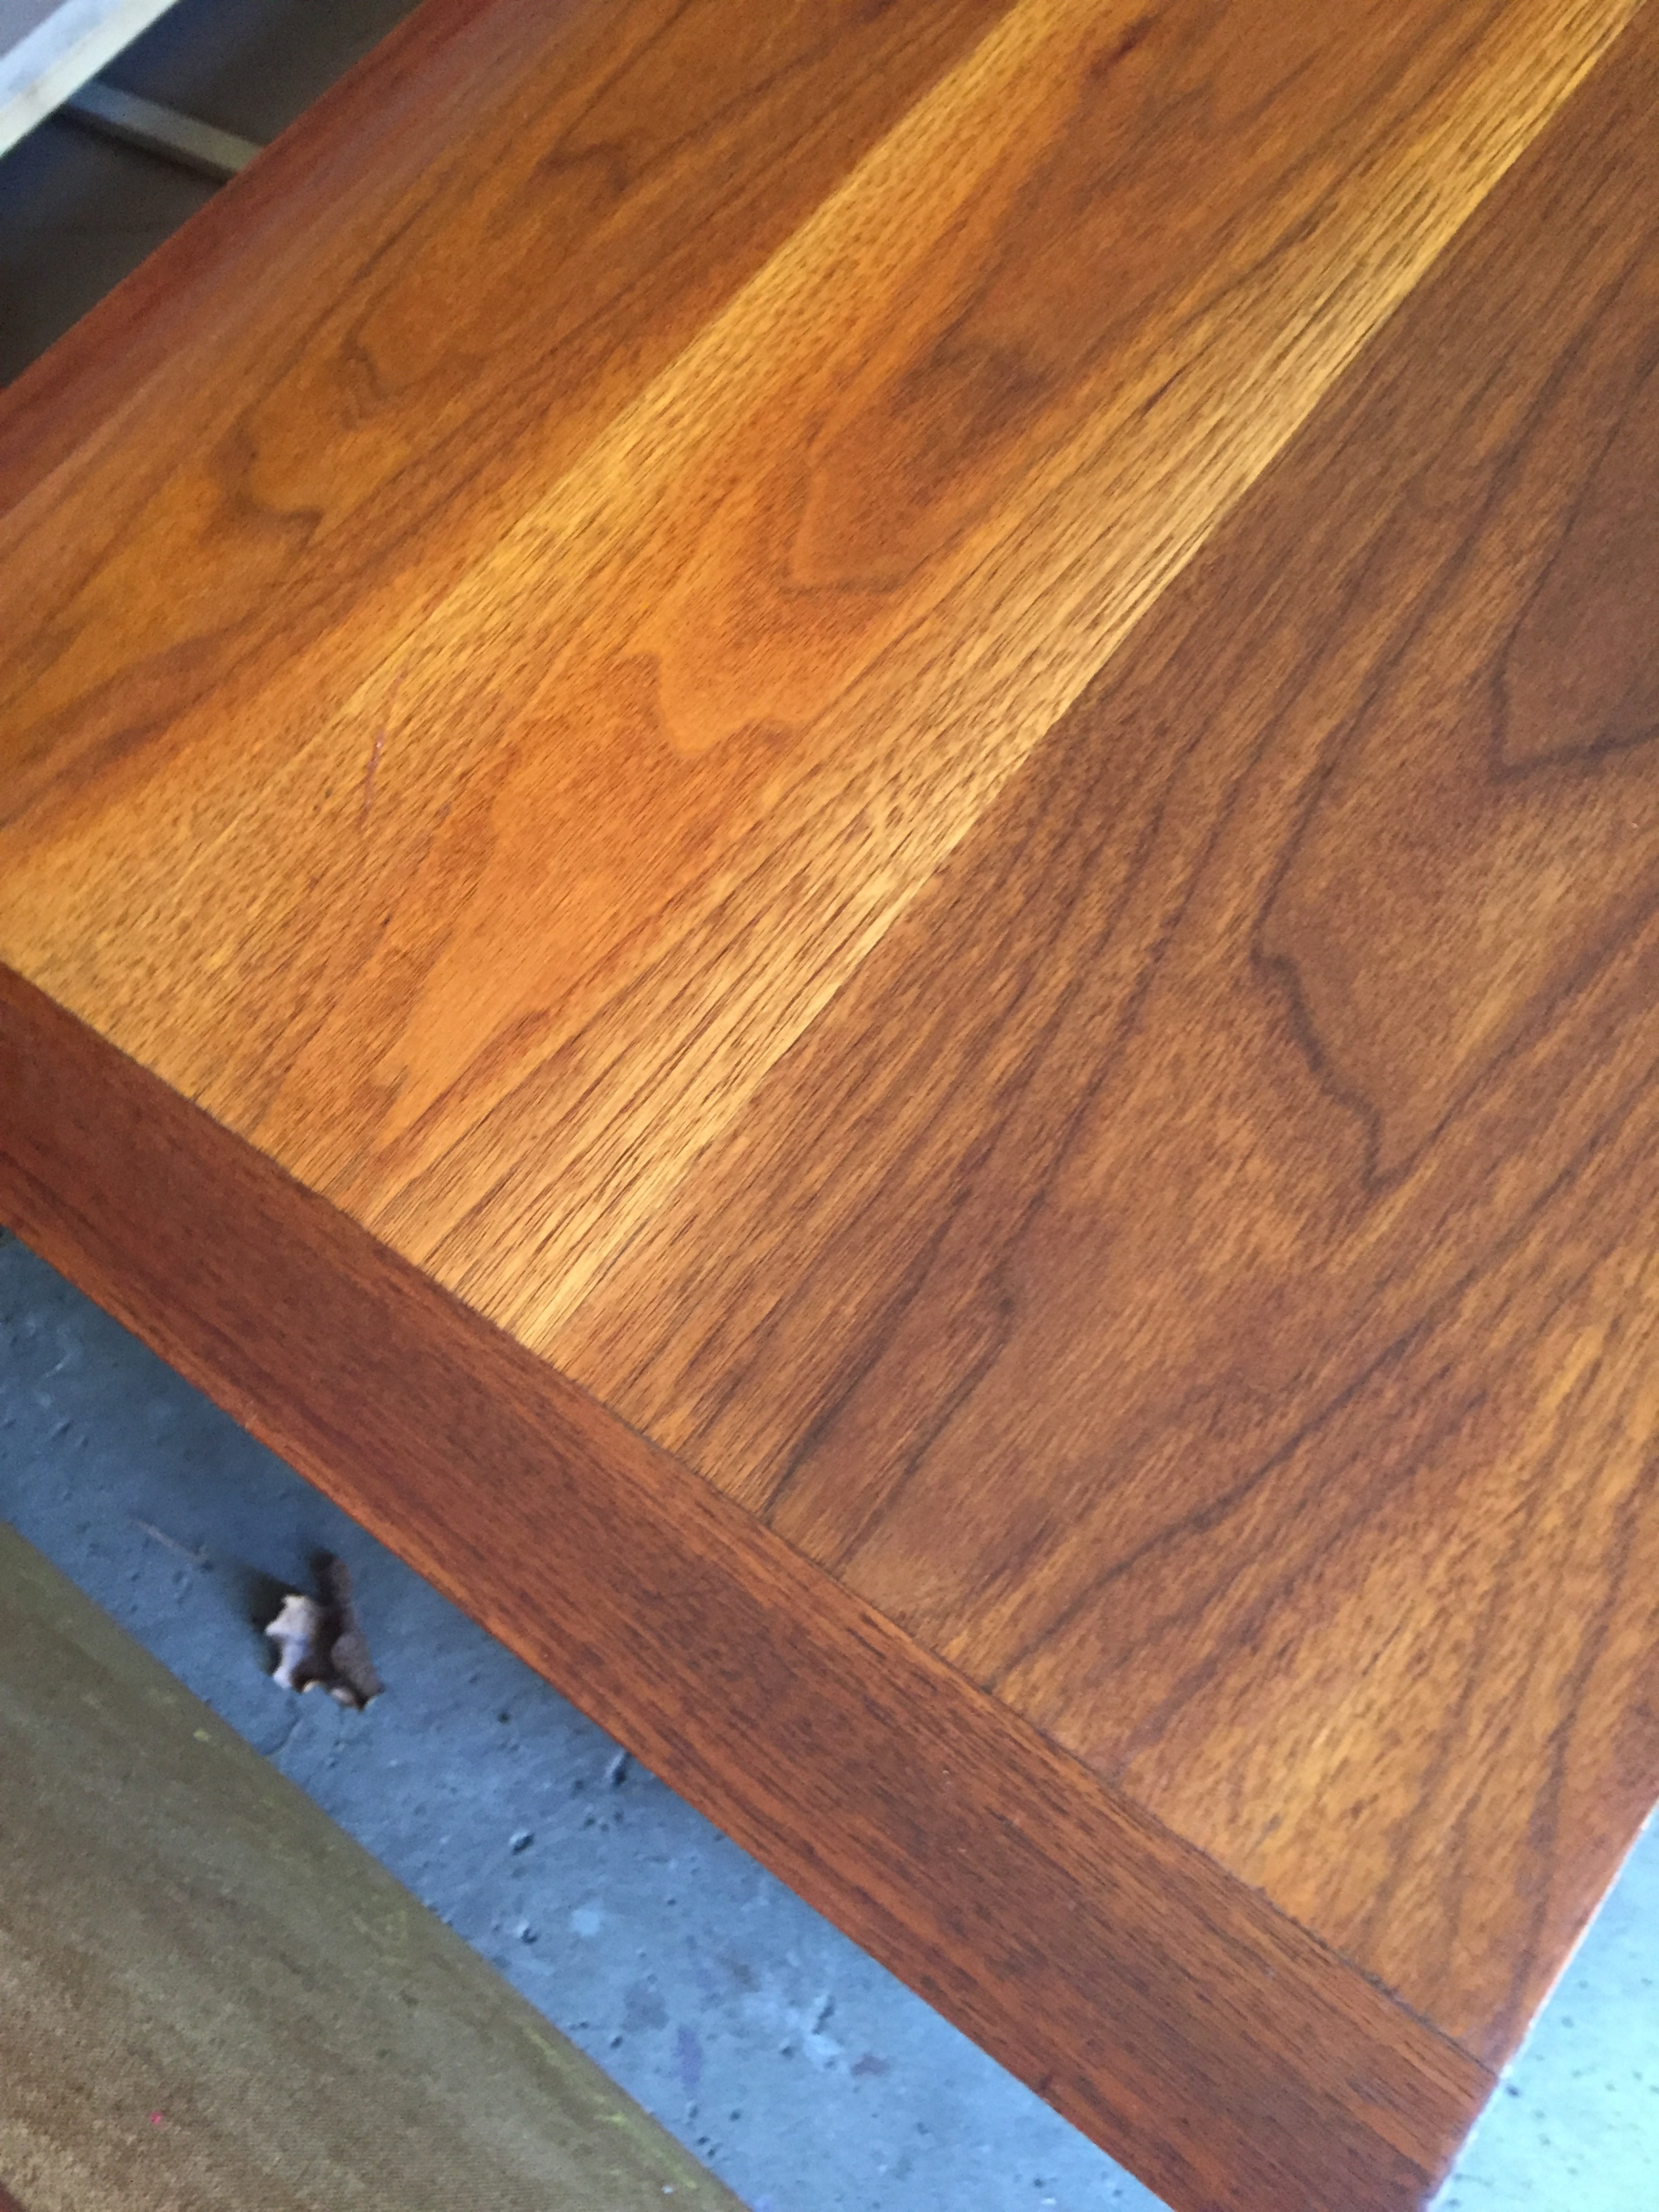 The beautiful wood graining that had been hiding under years of abuse.....